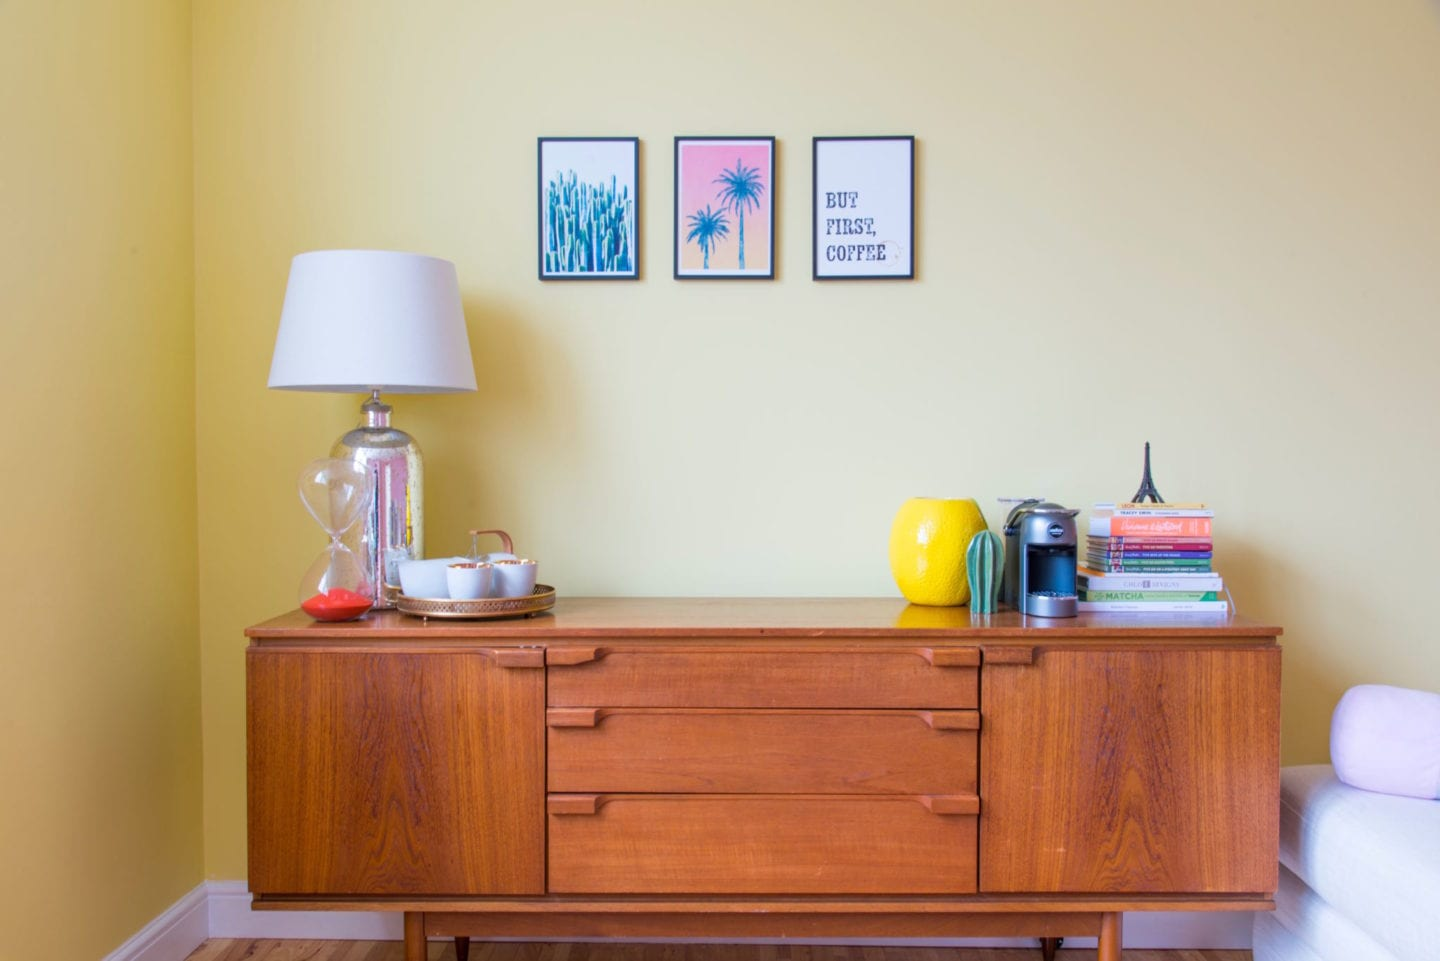 Room Tour: The Battenberg Lounge